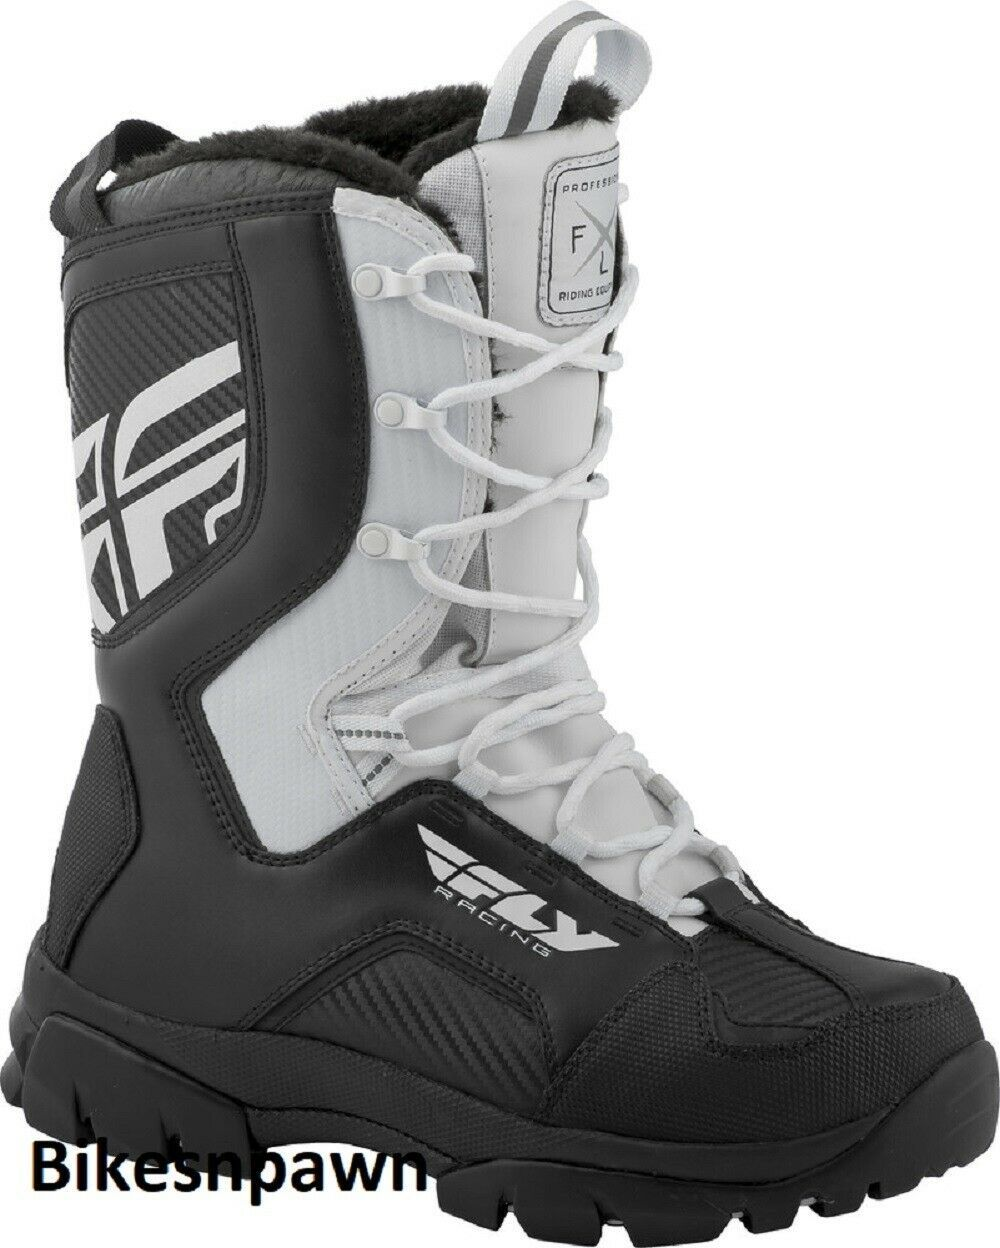 New Mens FLY Racing Marker Black/White Size 11 Snowmobile Winter Boots -40 F